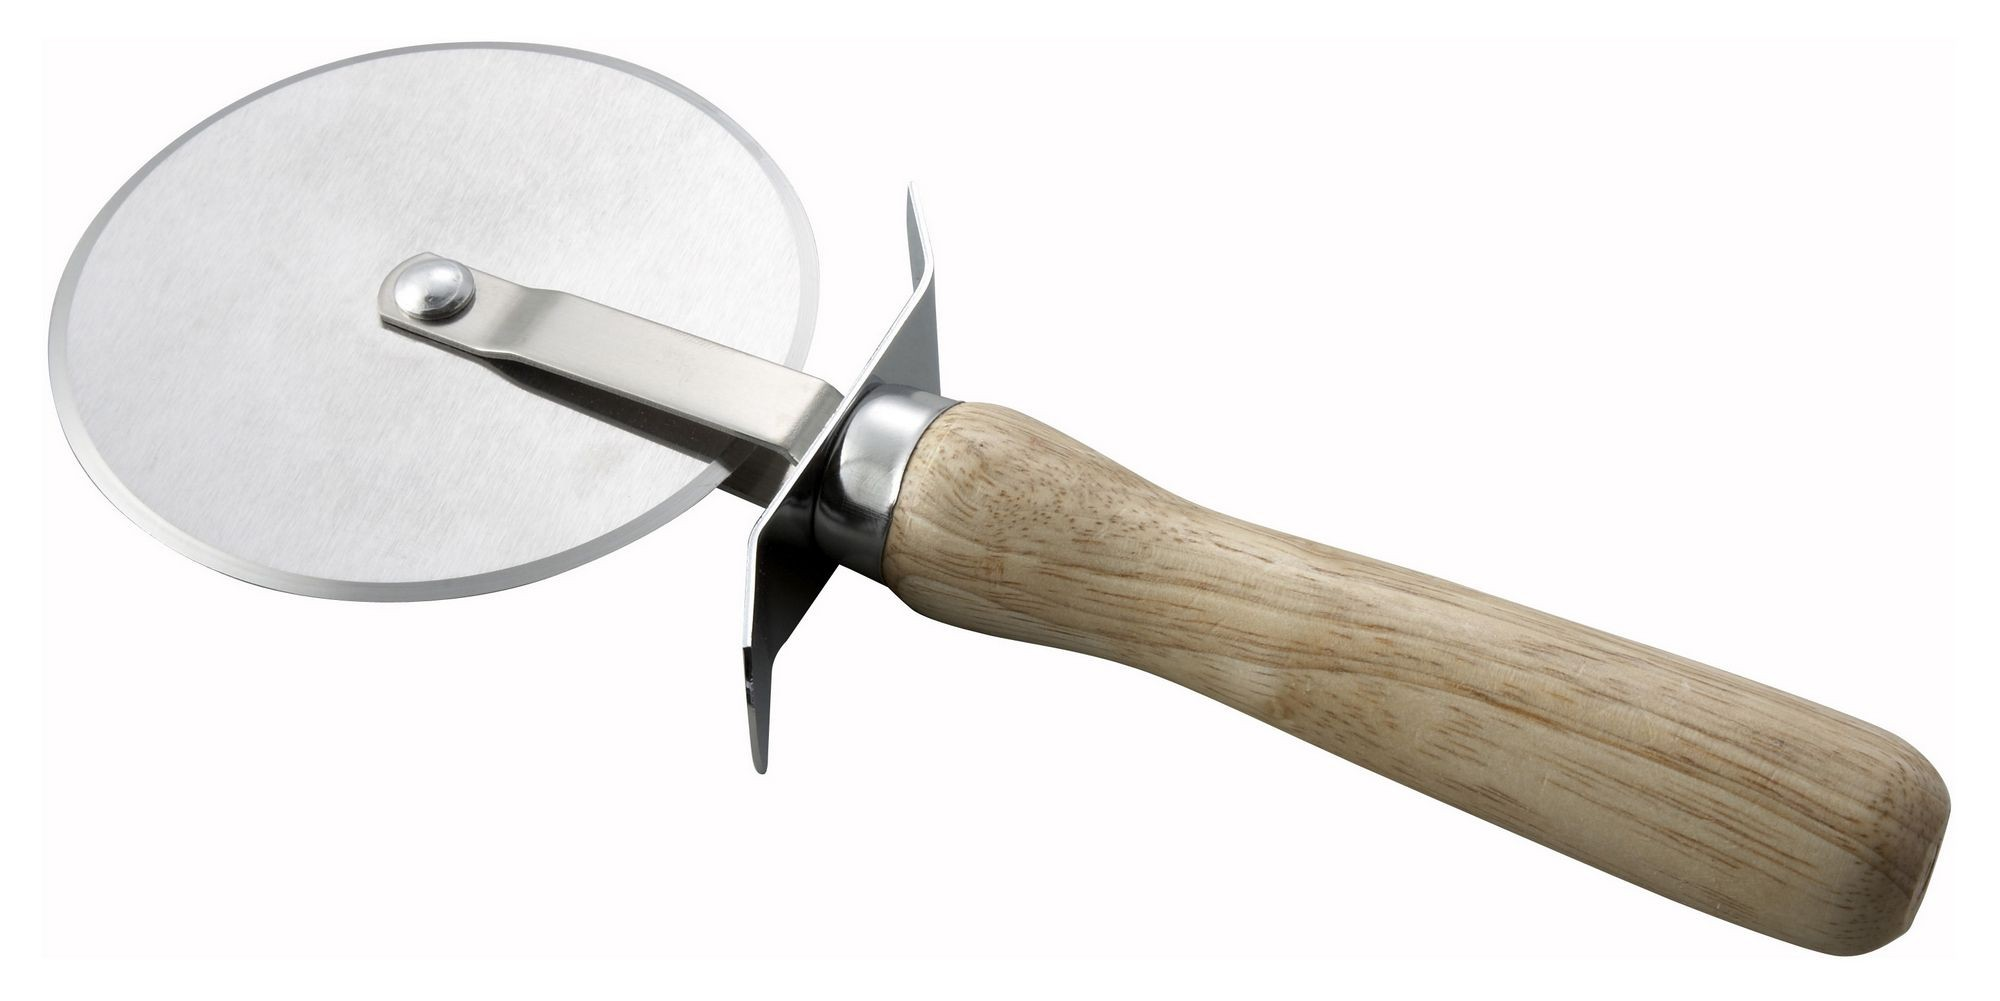 Wheel Pizza Cutter With Wood Handle - 4 Dia. Wheel